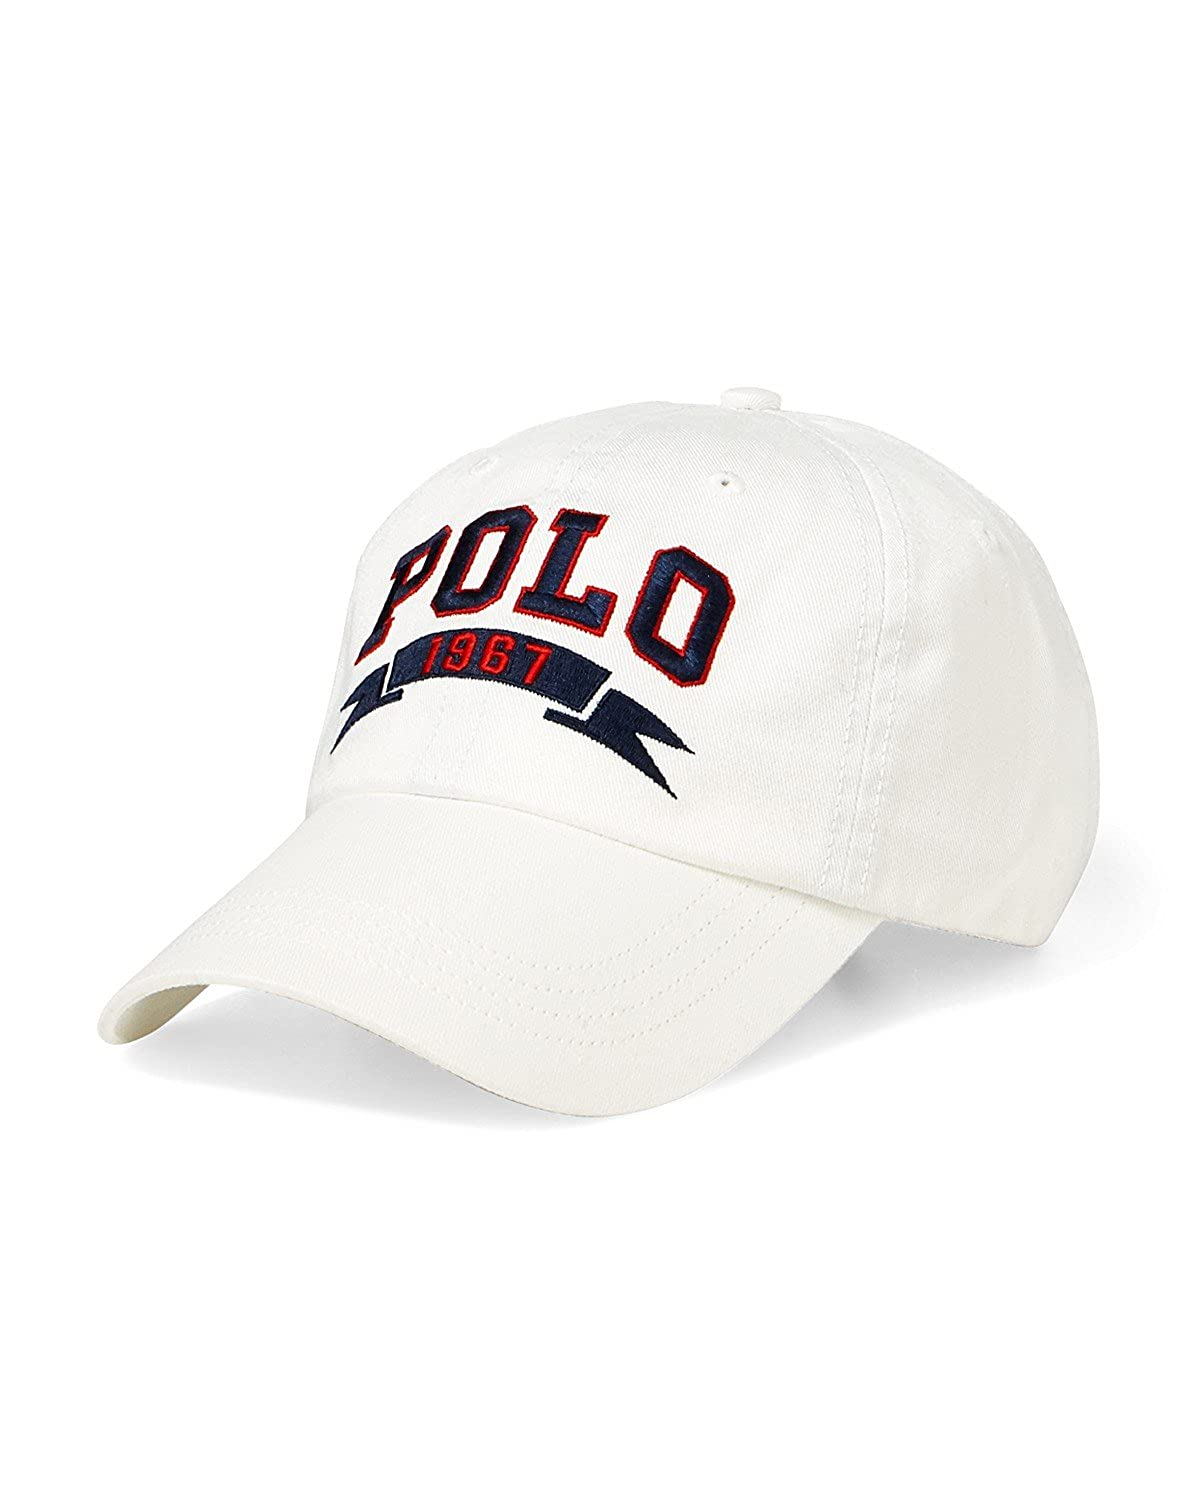 Ralph Lauren Polo Casquette Sport - Polo 1967 Sports Cap (White ...